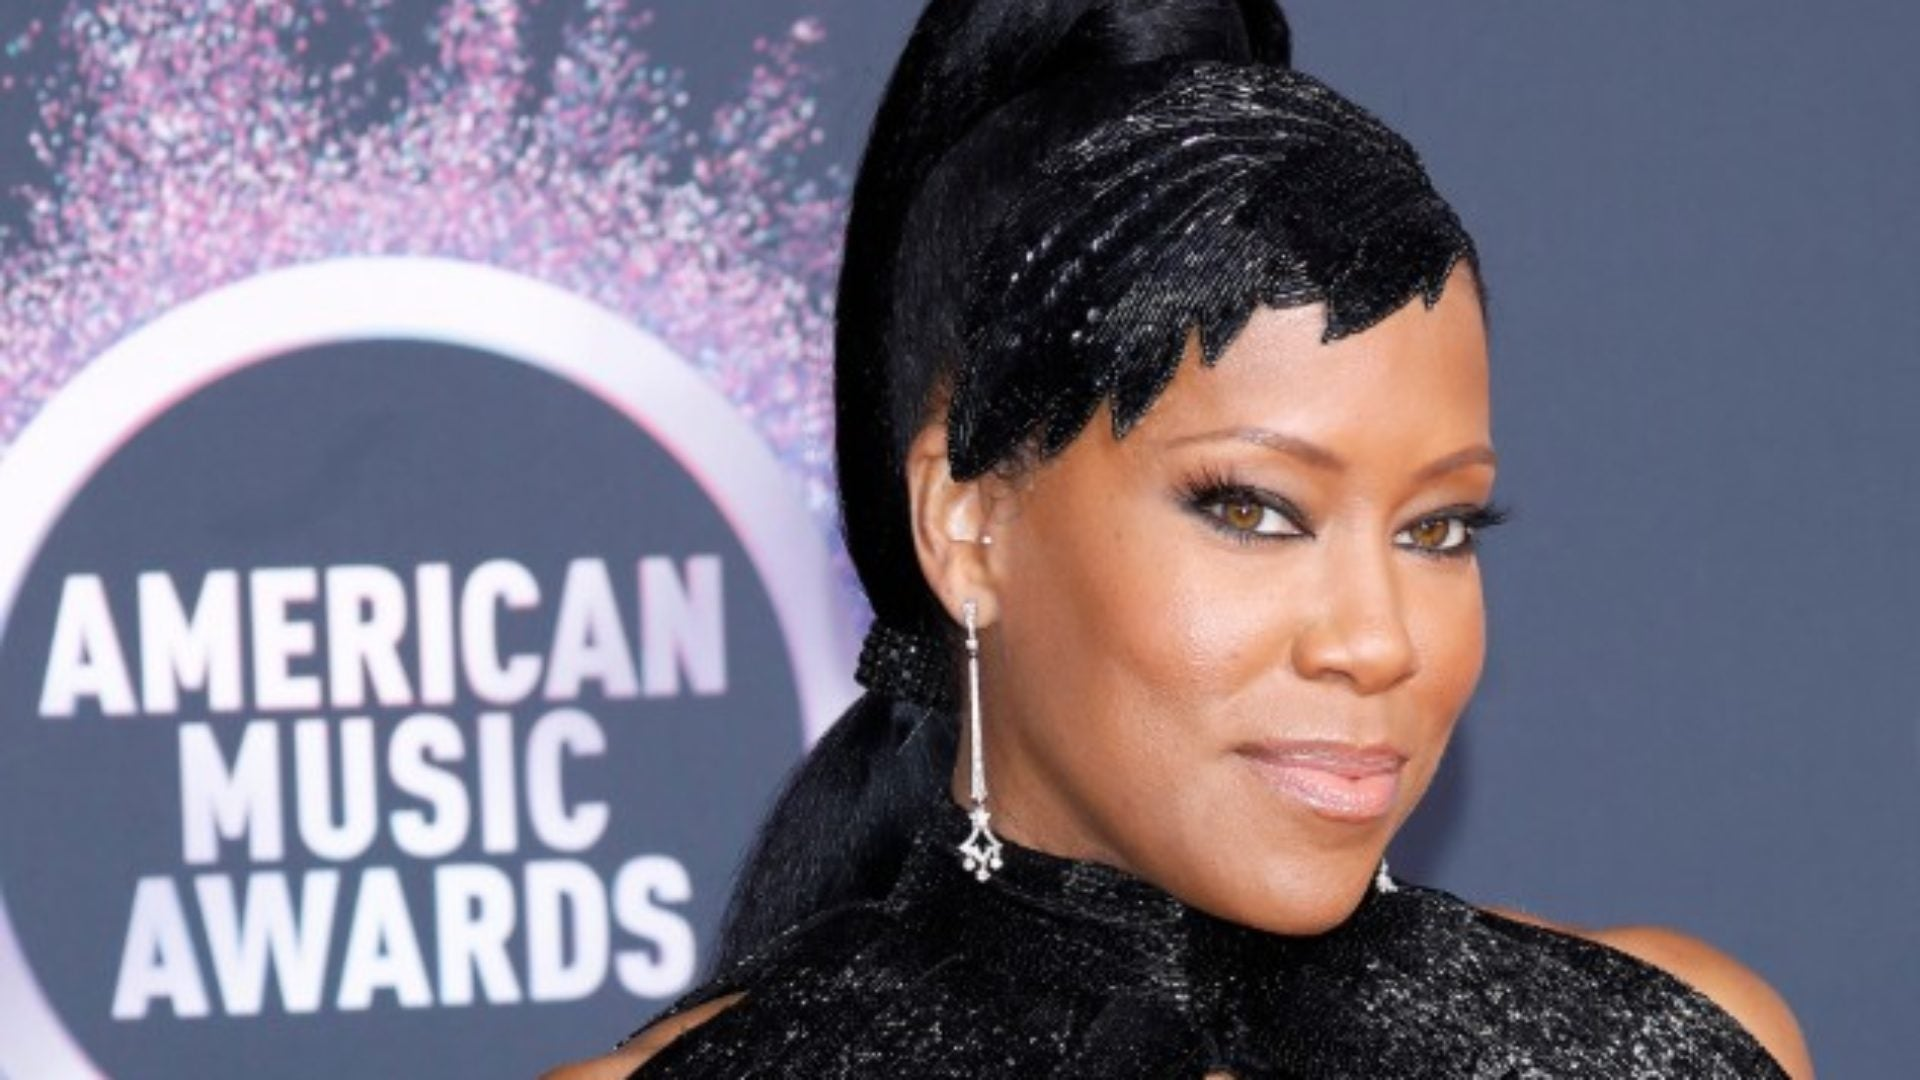 The Battle Of The Headpieces At The AMAs